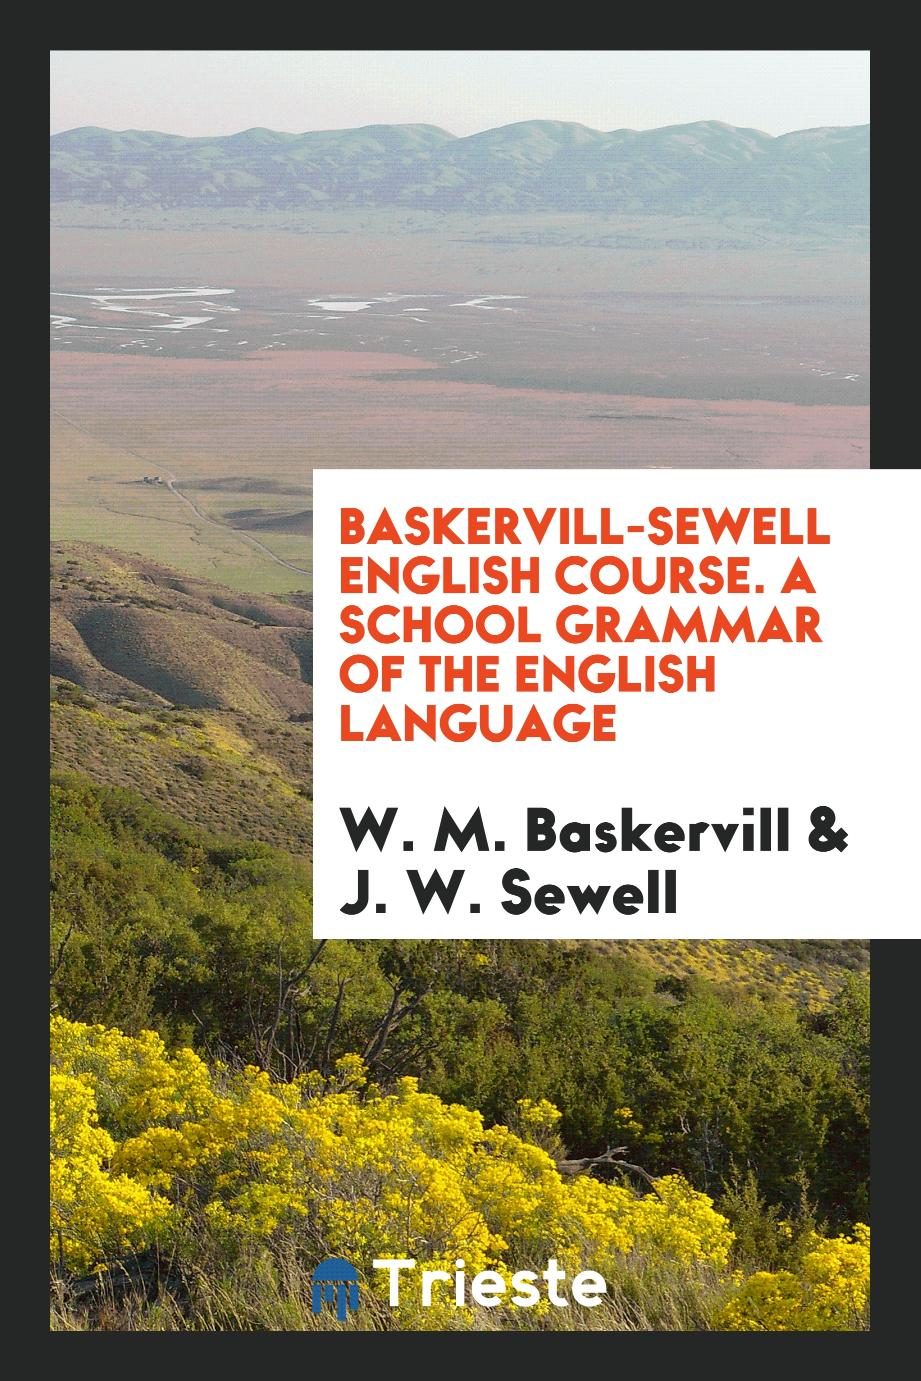 Baskervill-sewell english course. A school grammar of the English language